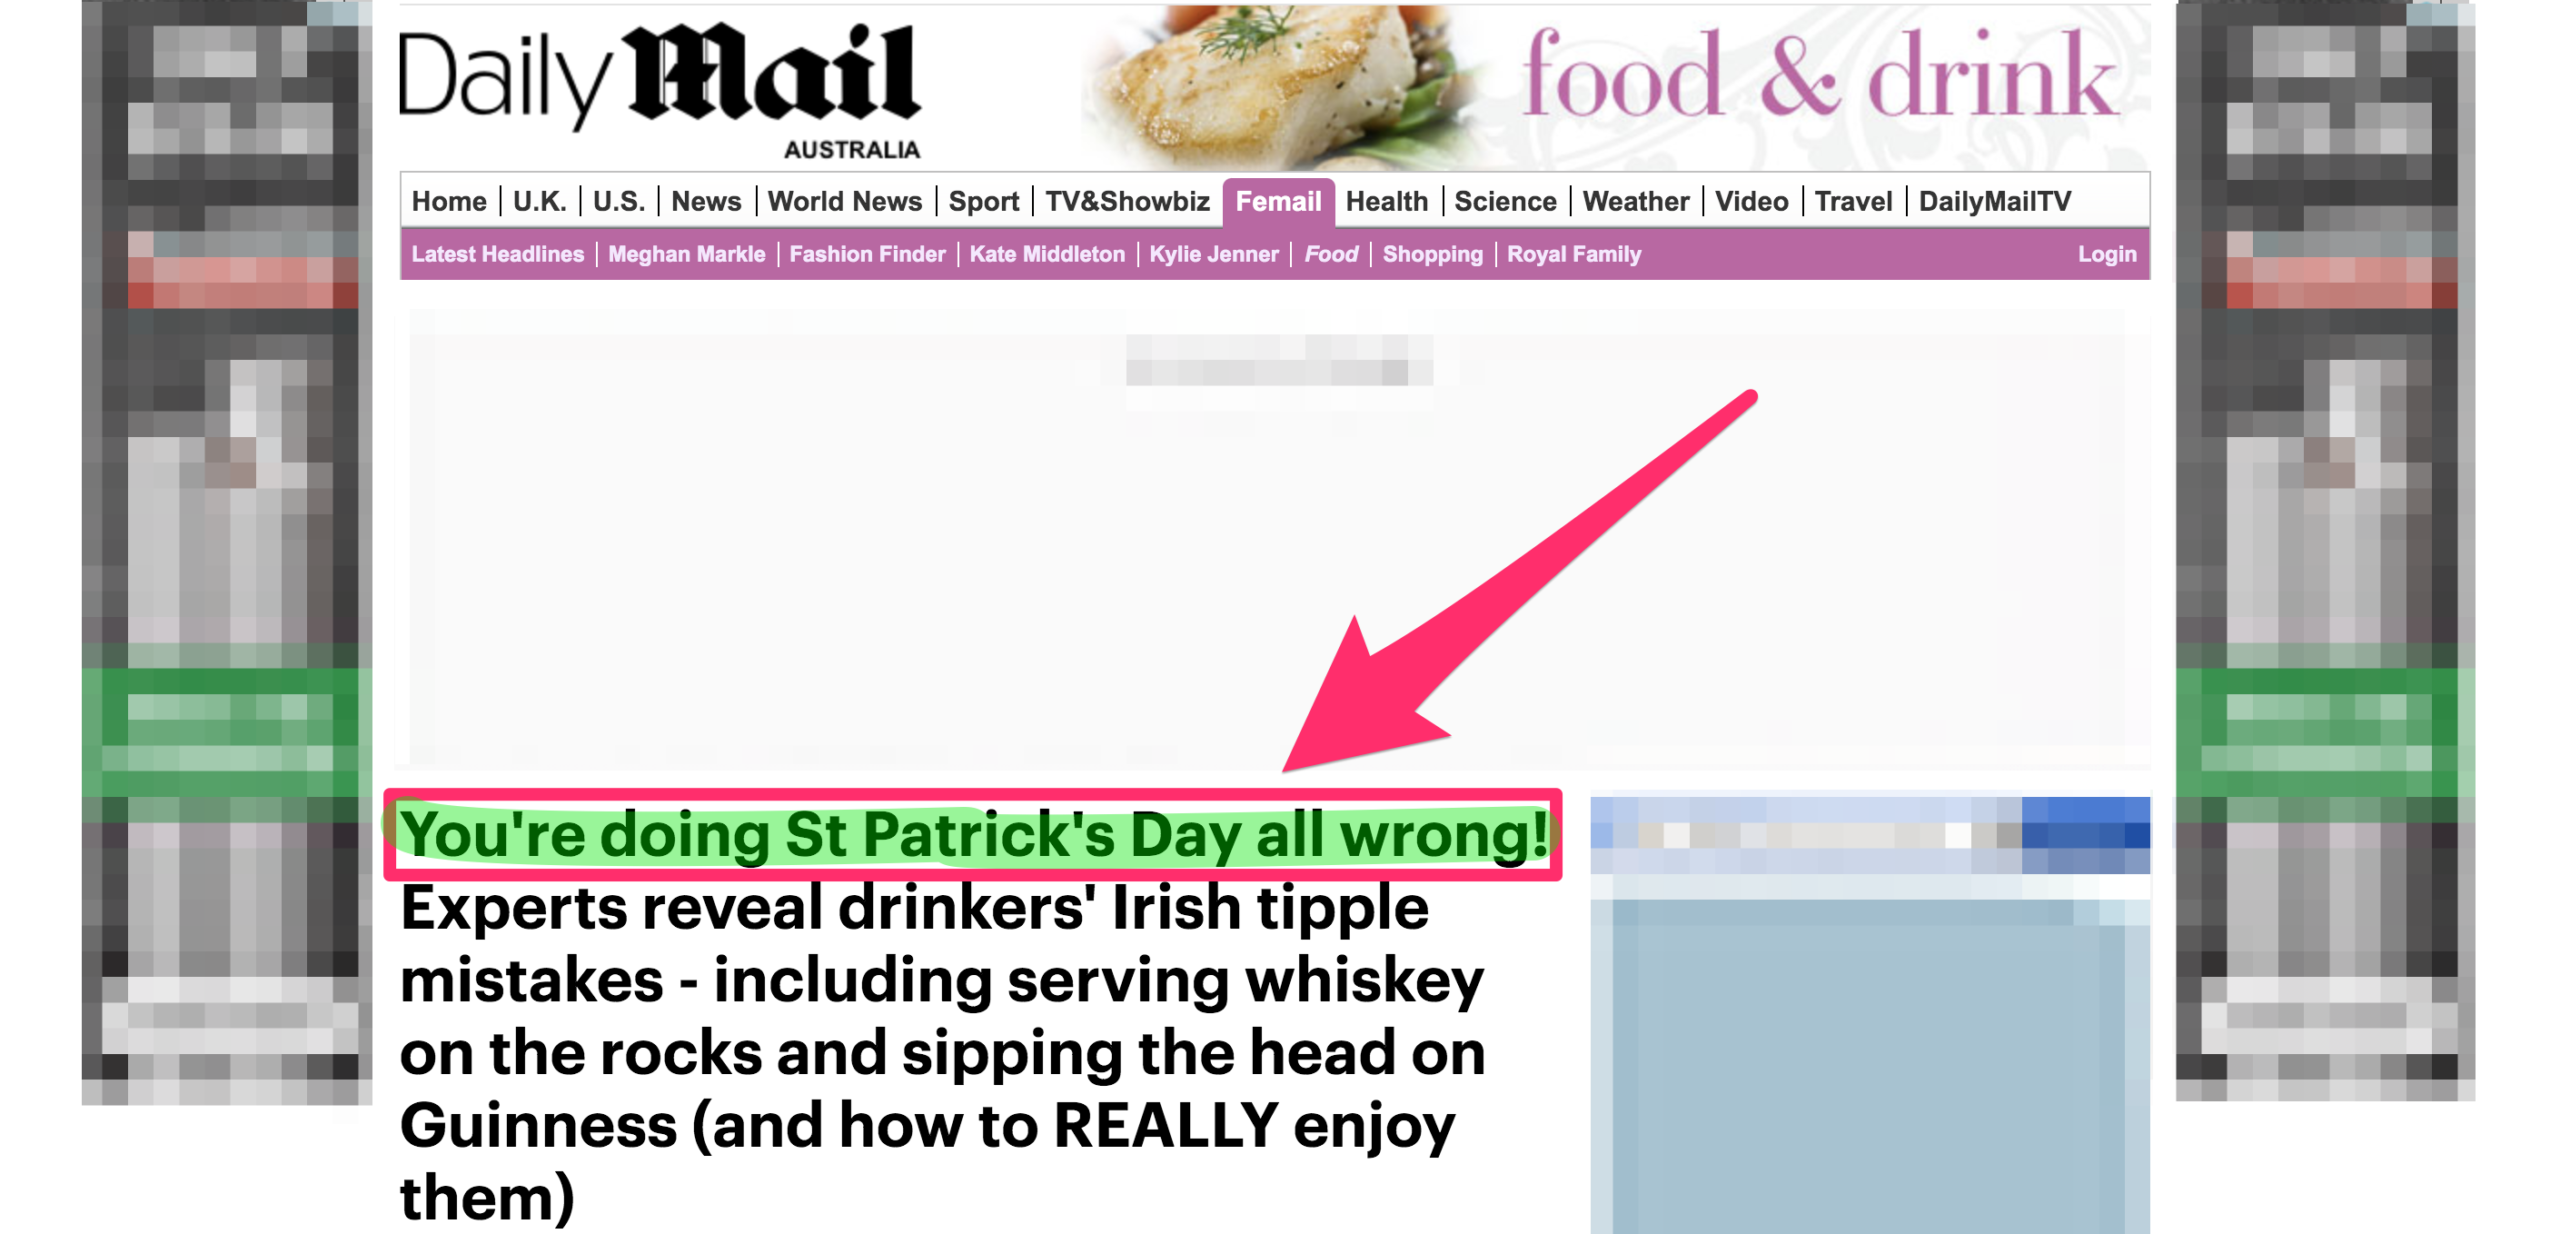 daily mail youre doing it wrong style post headline about saint paddys day